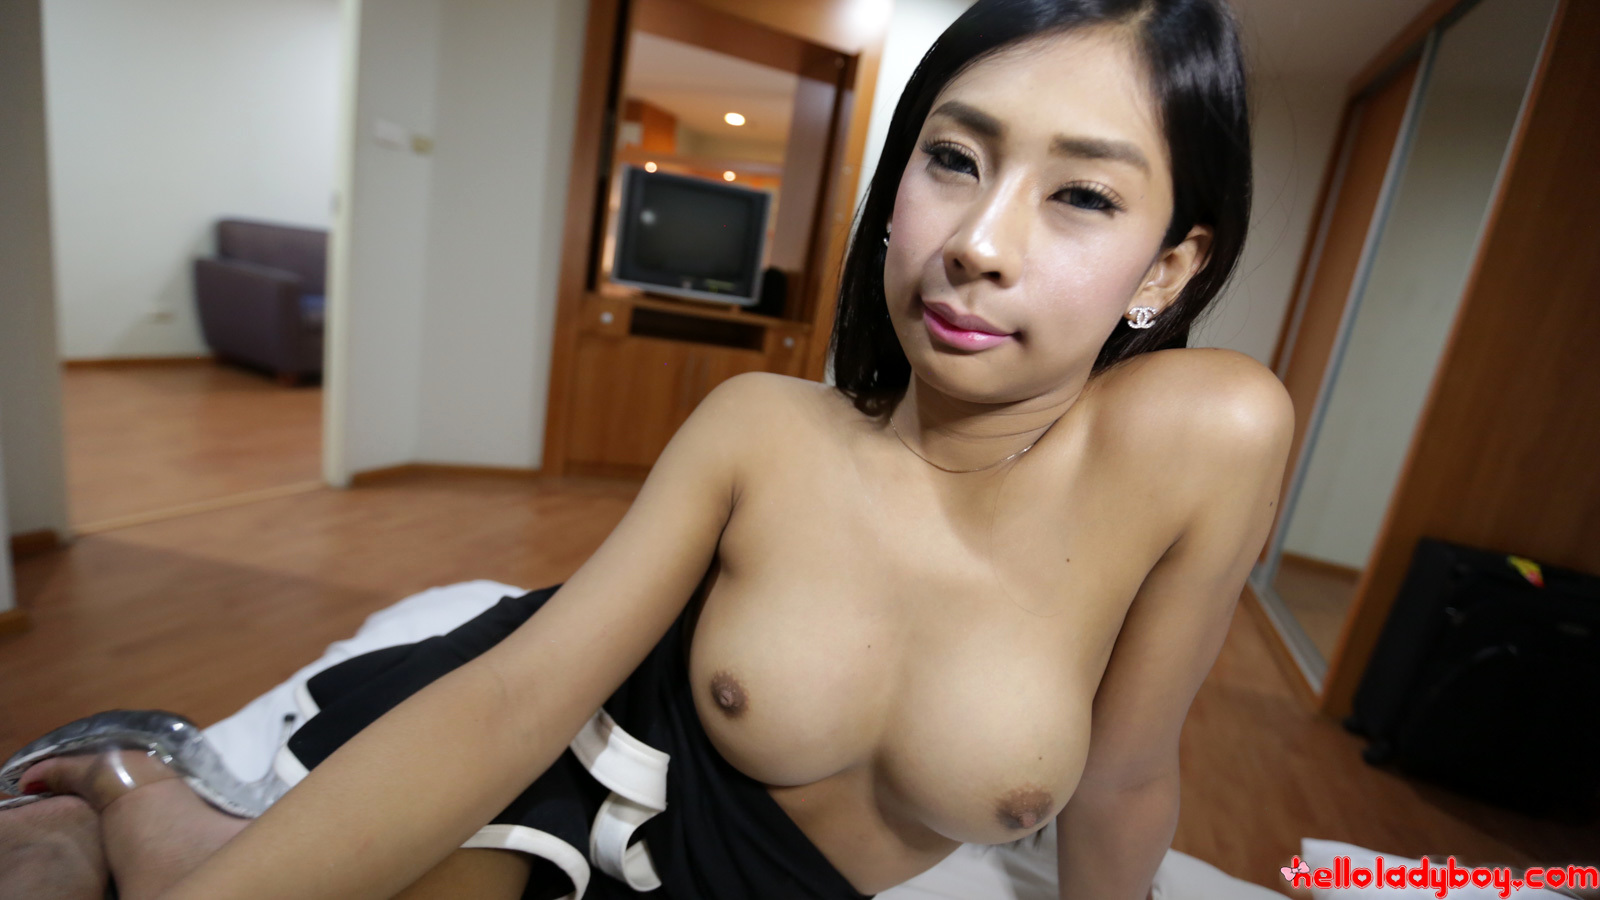 20 Year Old Nasty Asian T-Girl Gives A Blowjob And Gets A Cum-Shot